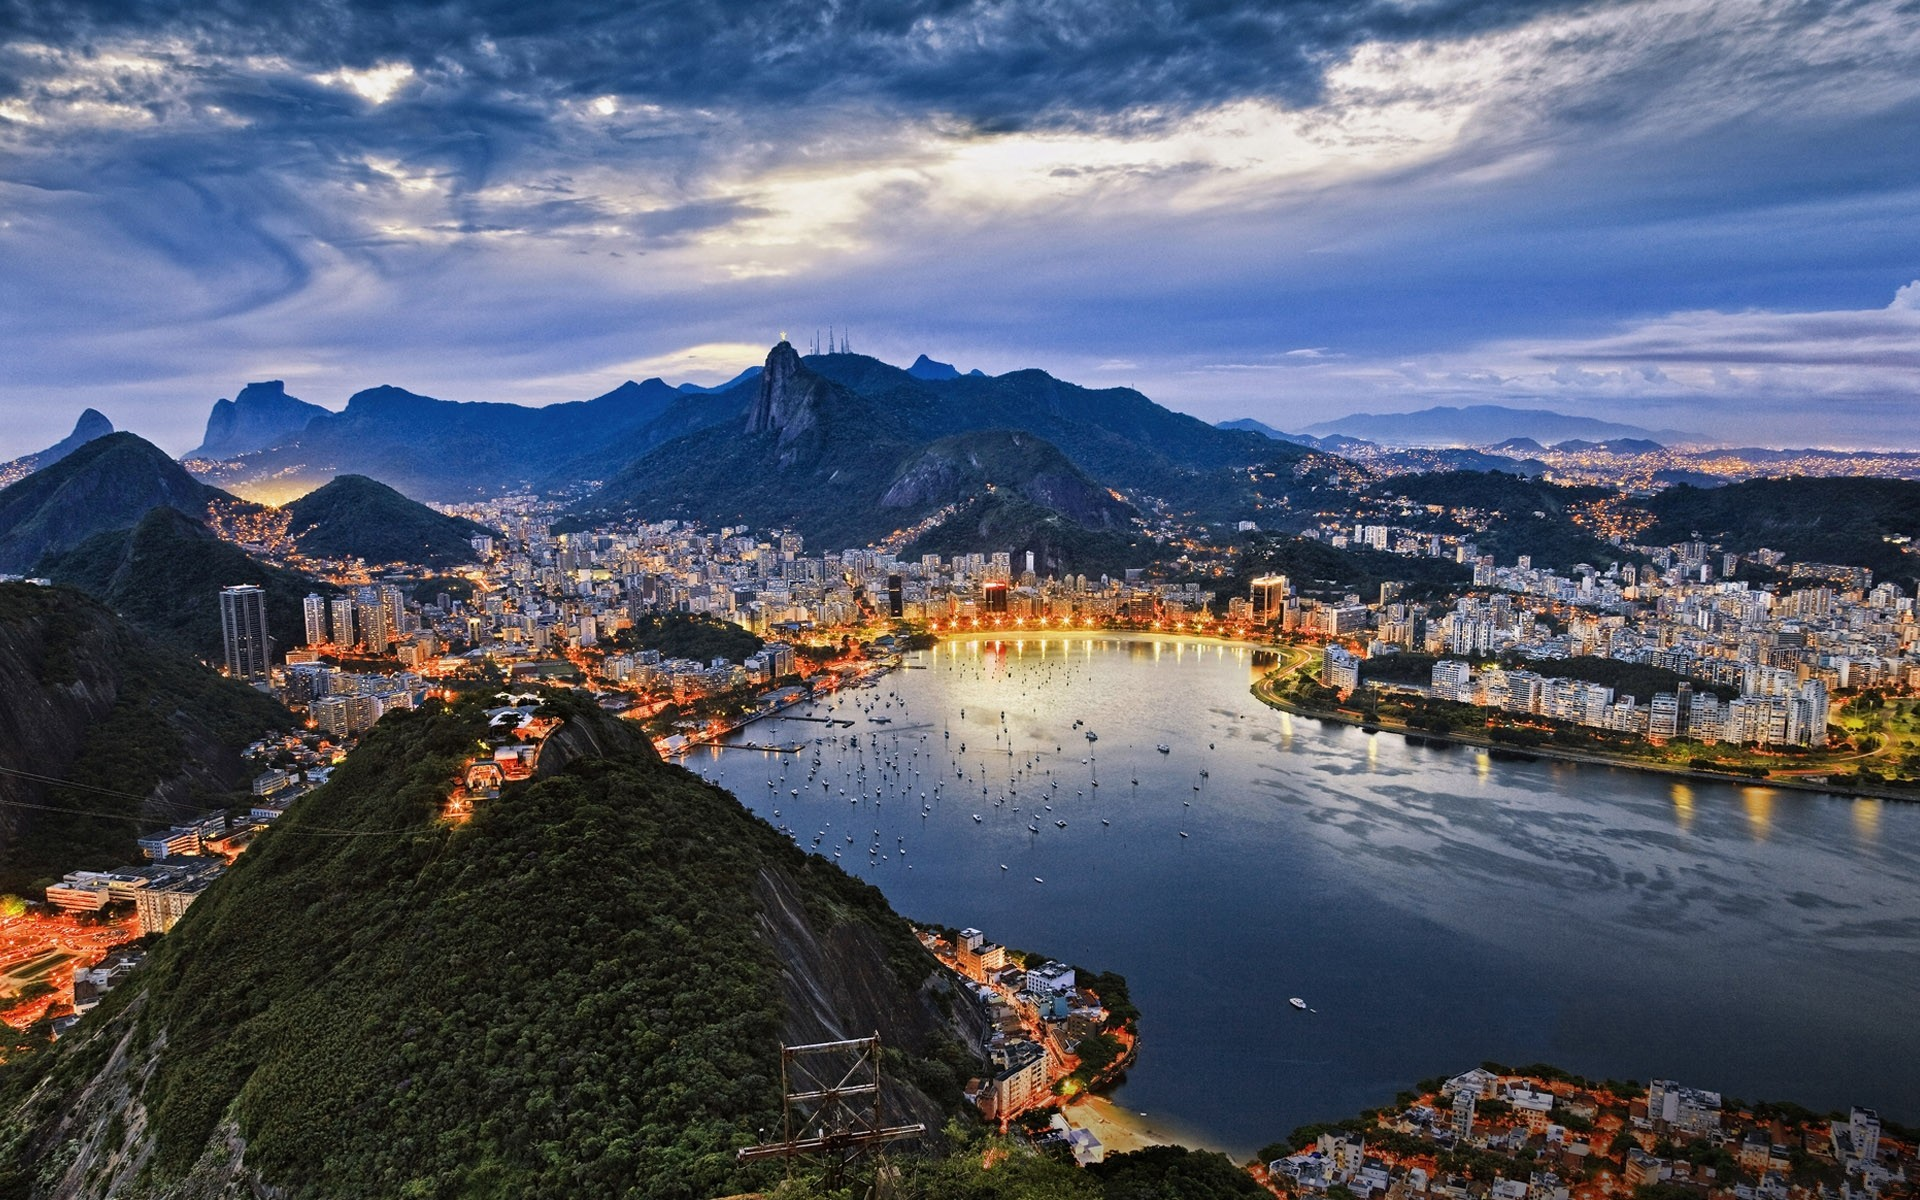 cityscapes Brazil Rio de HD Wallpaper